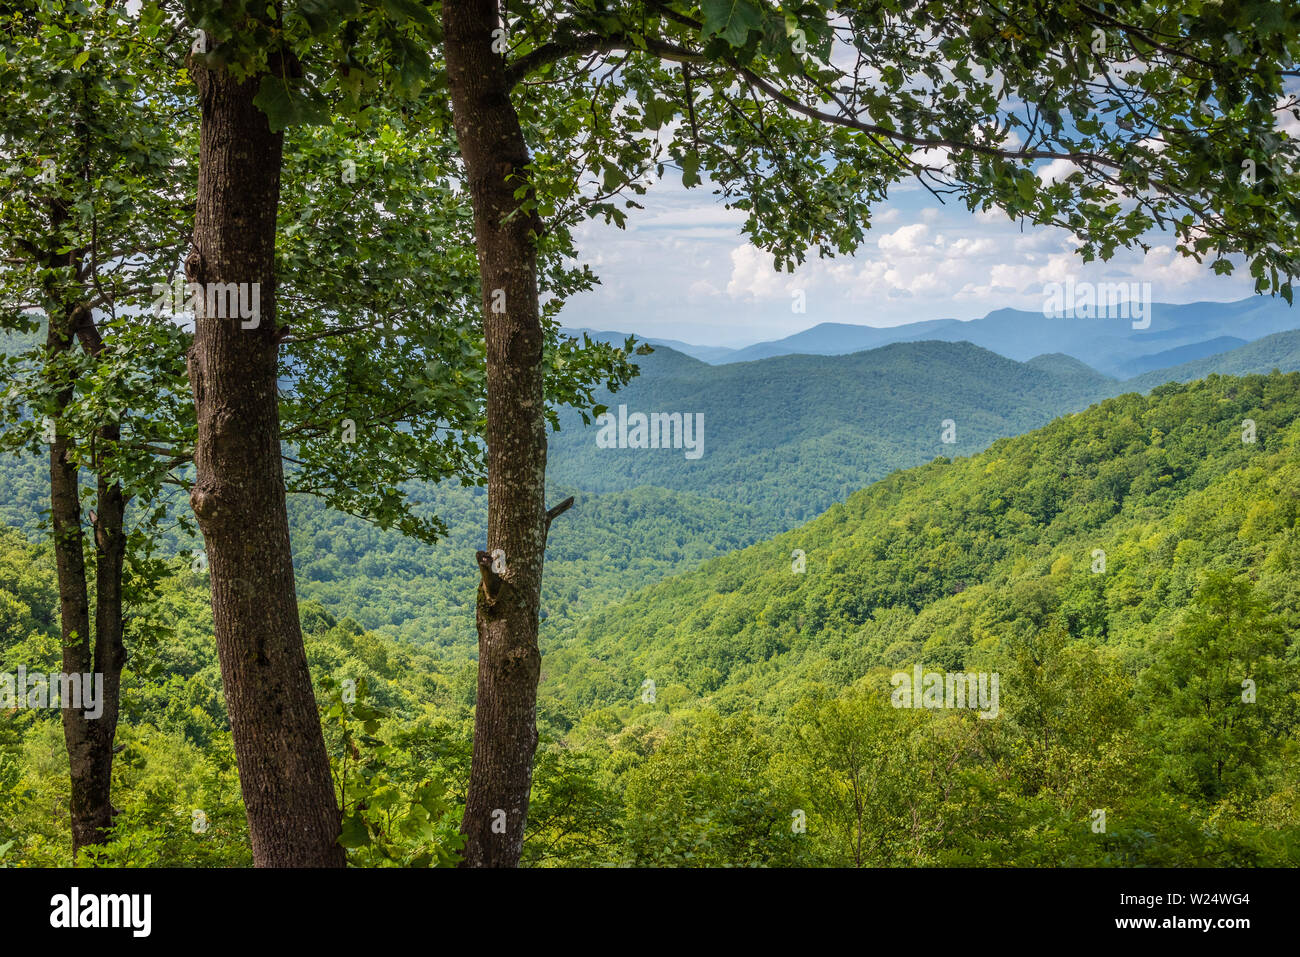 View of Hog Pen Gap near the Appalachian Trail along the Richard B. Russell Scenic Highway in the Blue Ridge Mountains of Northeast Georgia. (USA) Stock Photo